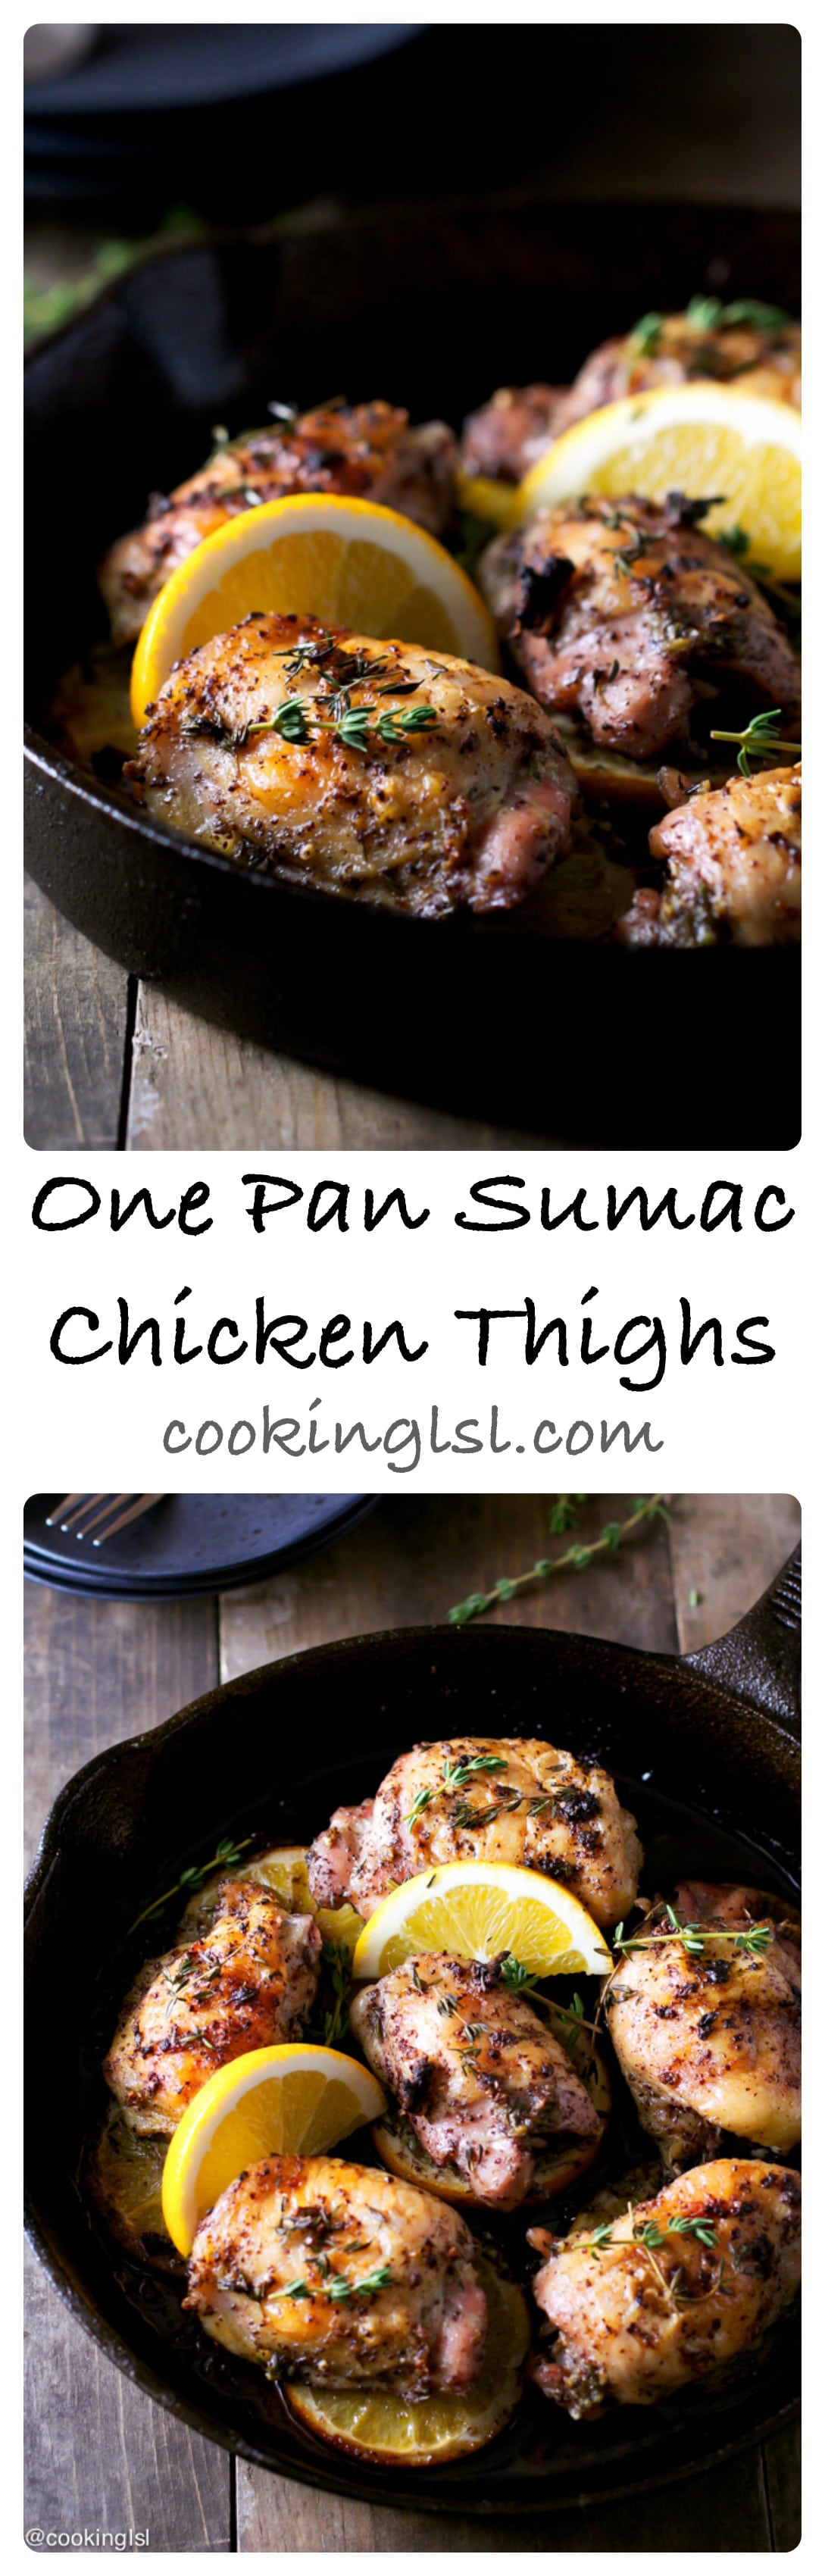 how to cook with sumac